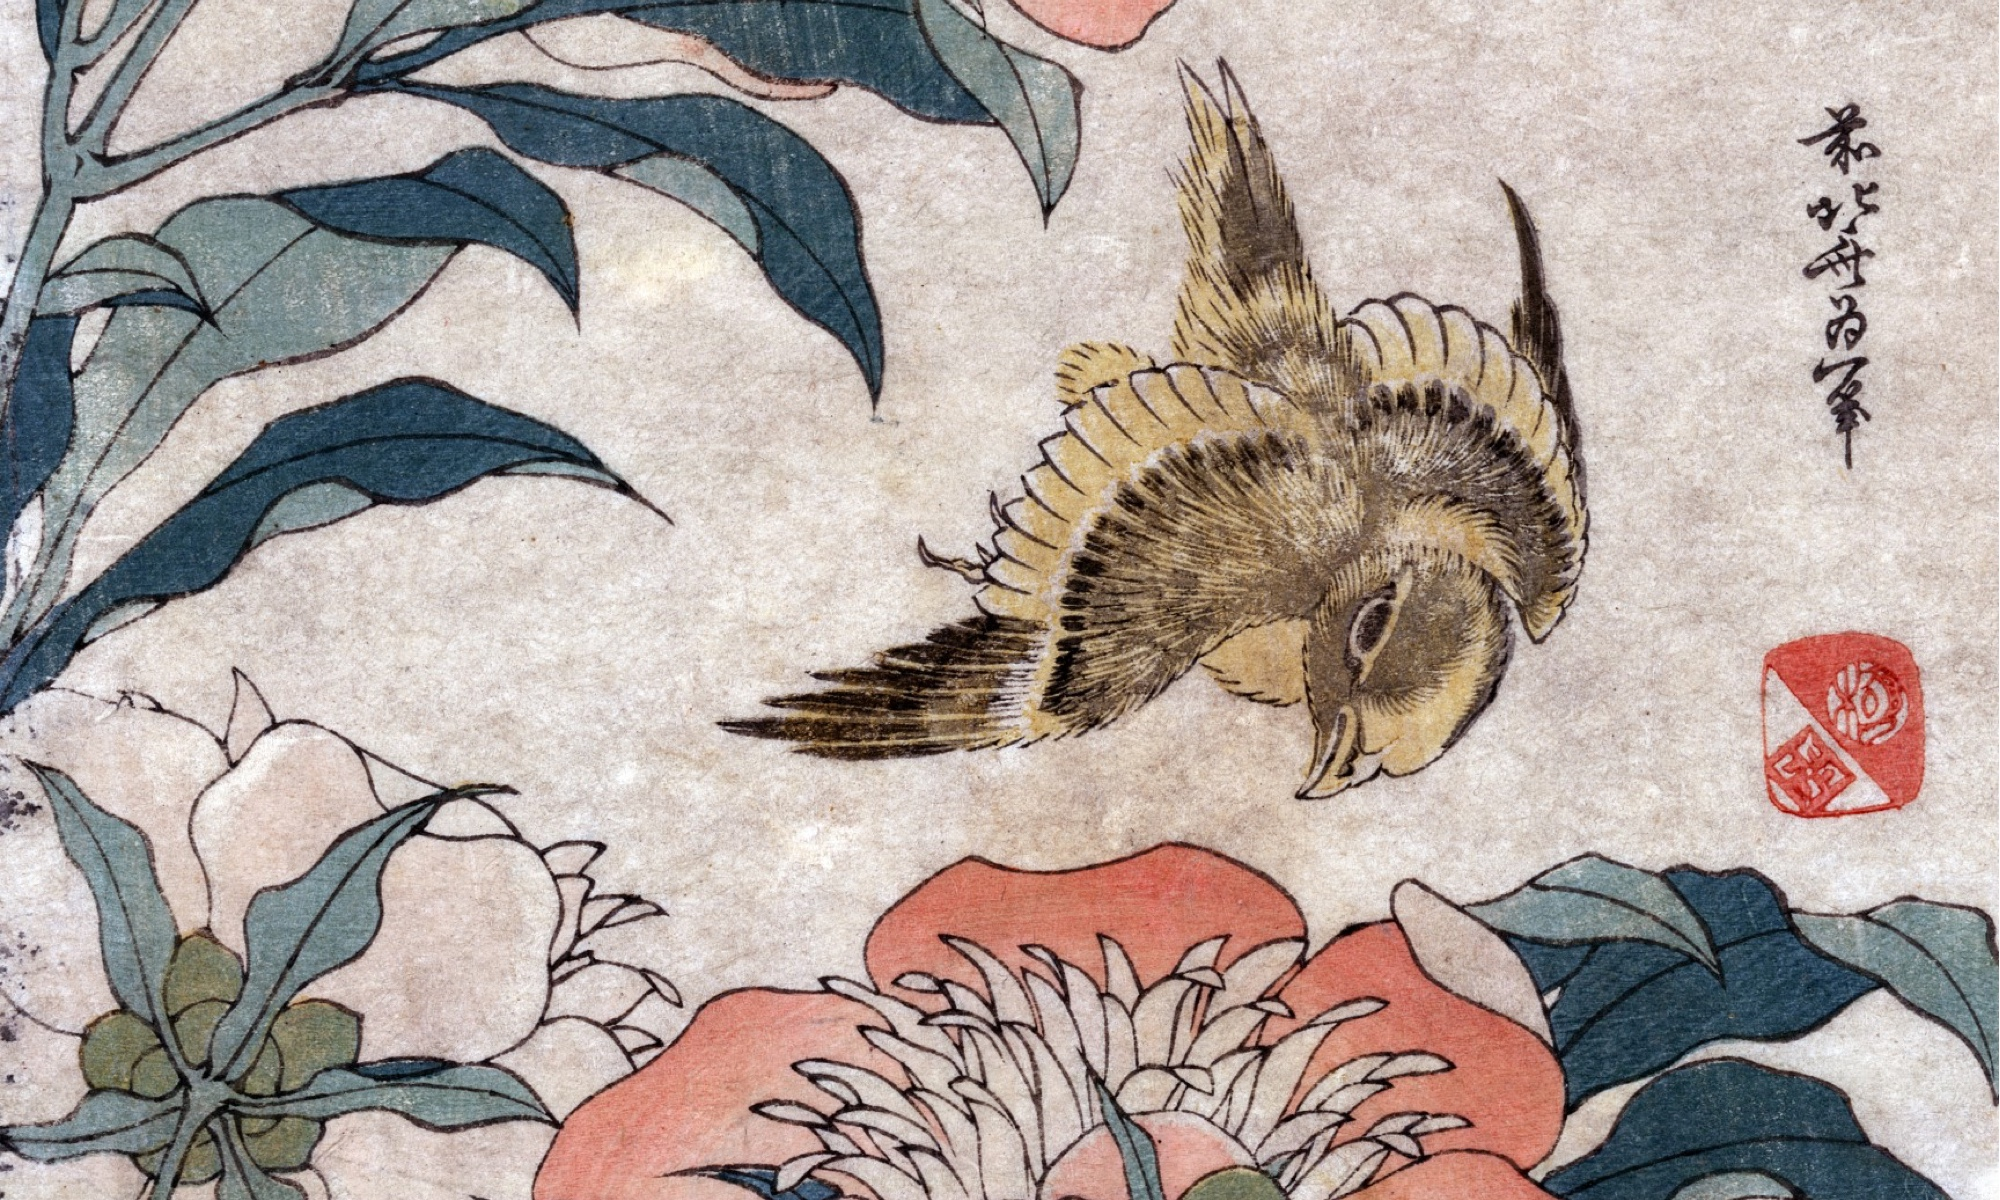 A piece of Japanese art showing a bird flying through flowers.